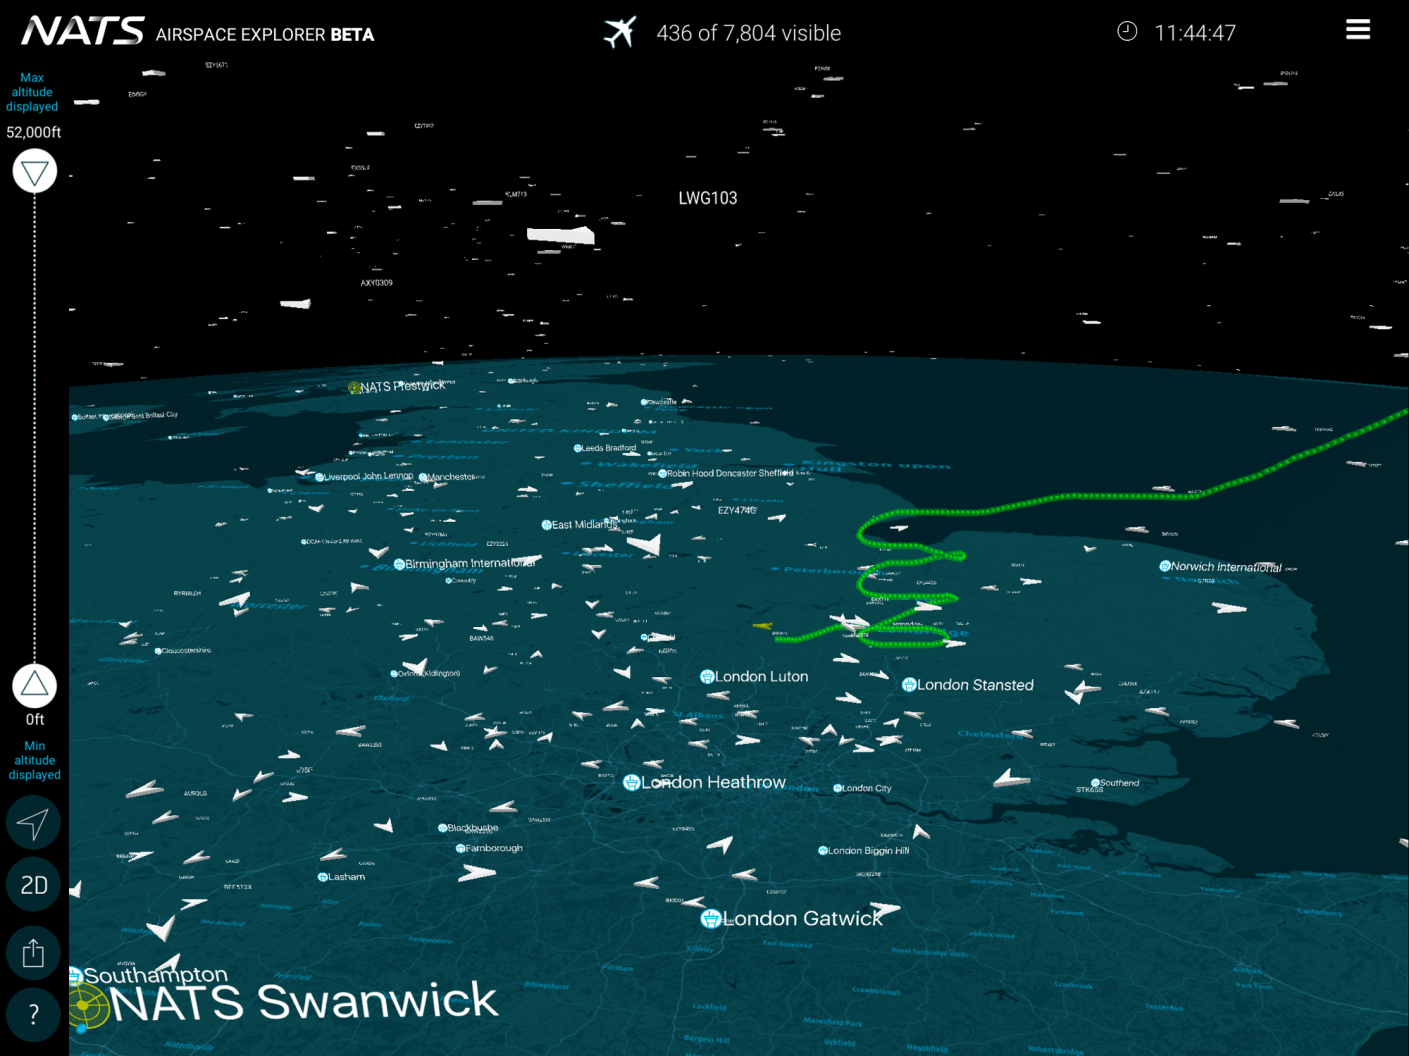 UK air traffic control provider launches flight tracking app - NATS